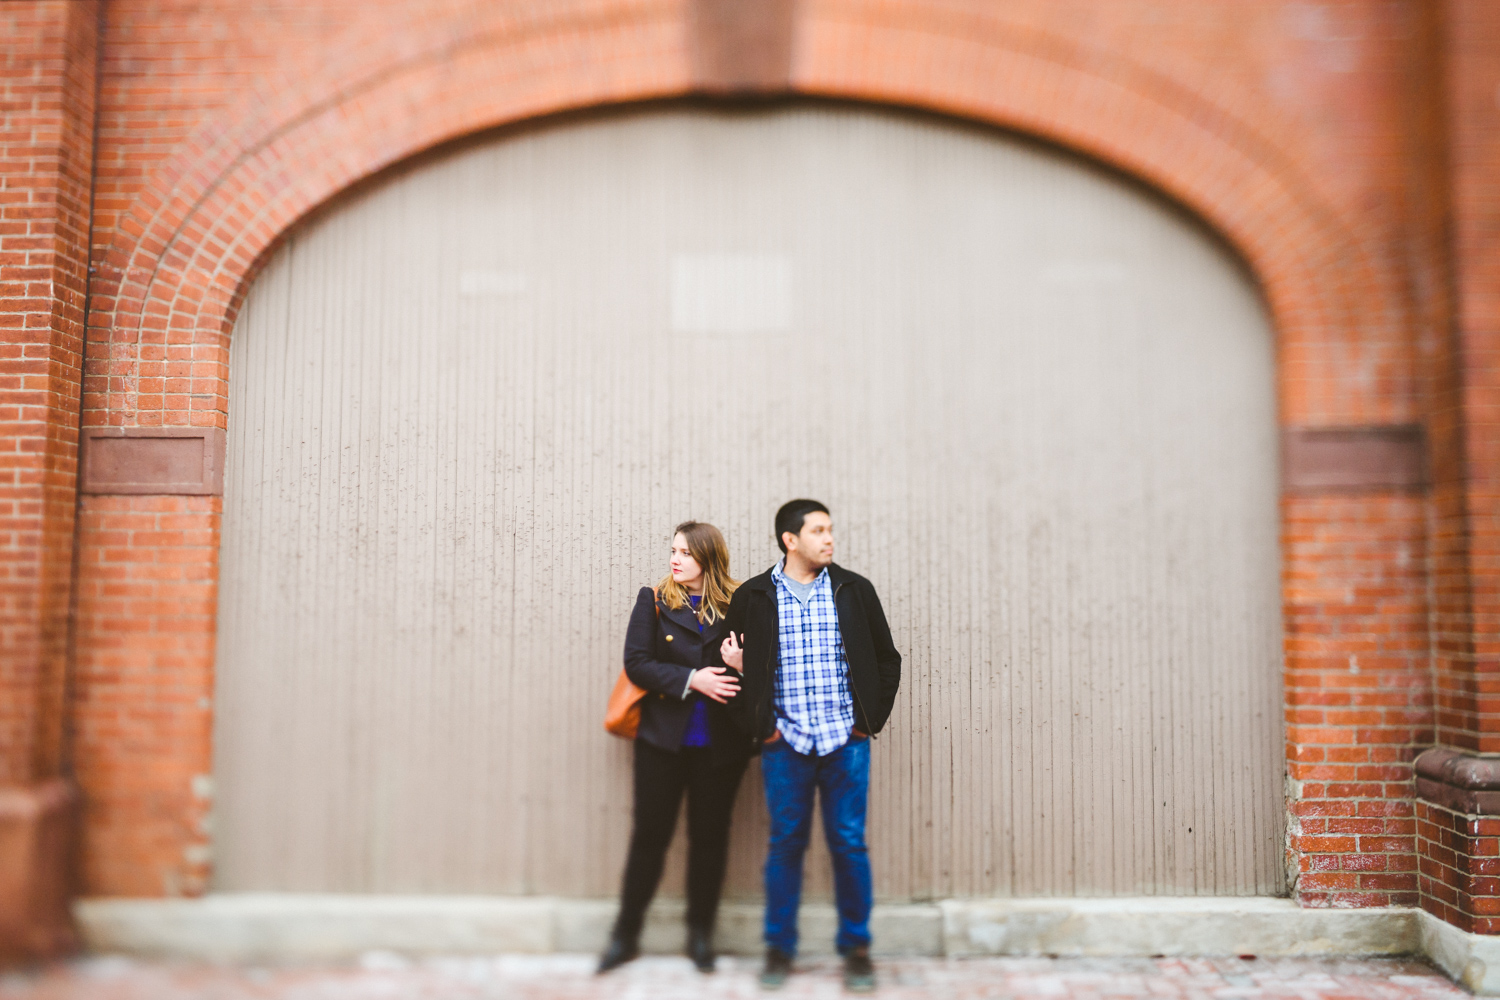 001 - freelens couple eastern market washington DC wedding photographer great photo.jpg